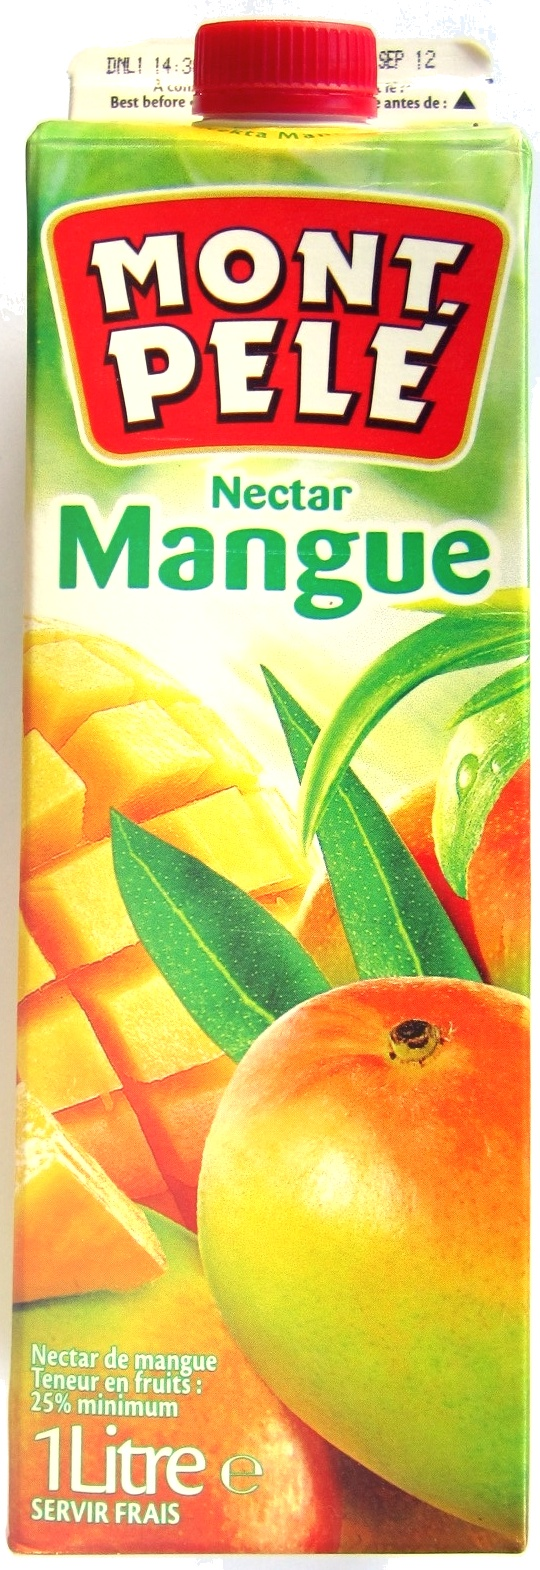 Nectar mangue - Product - fr